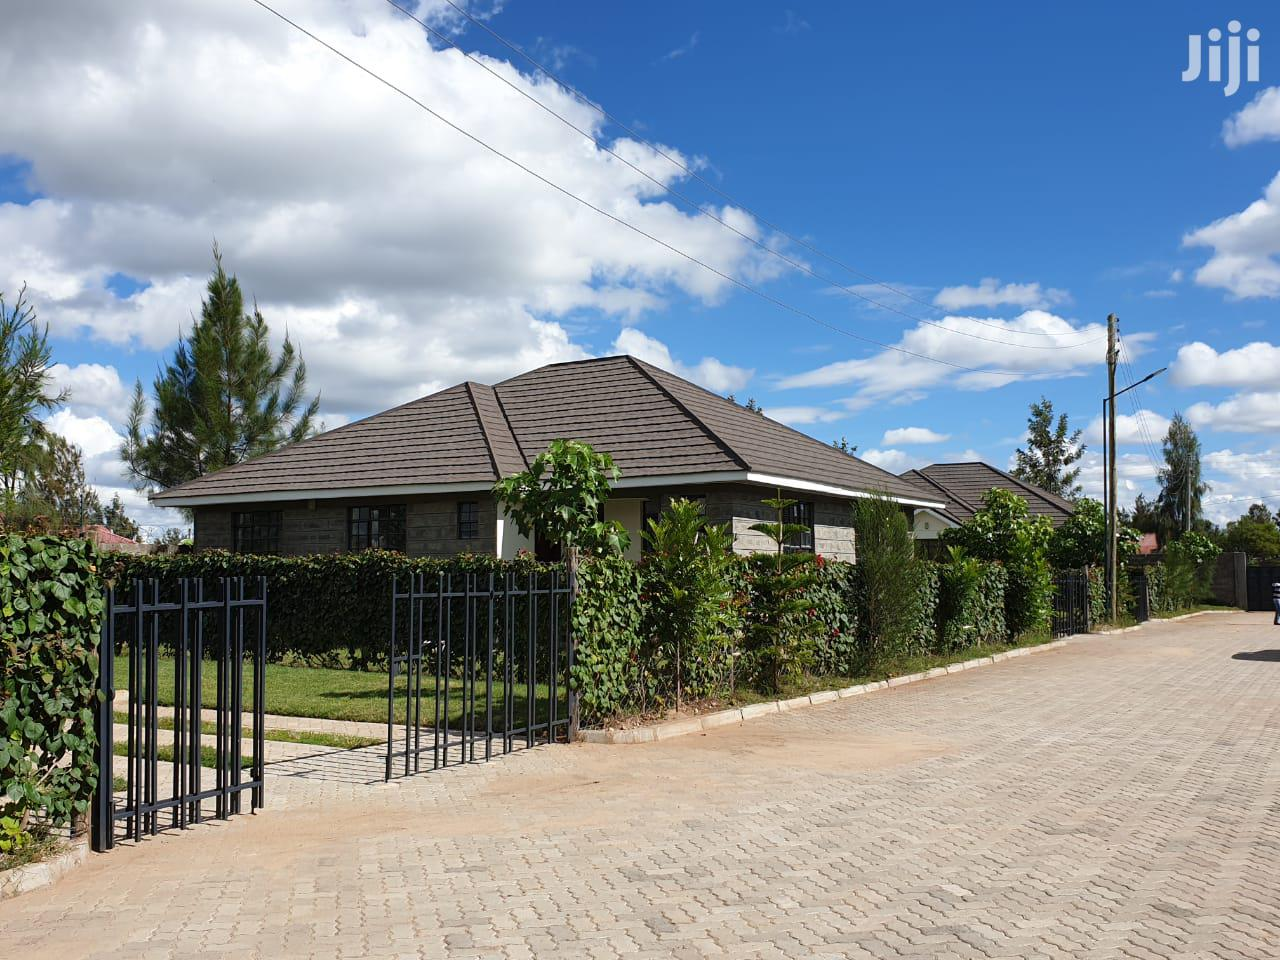 Three Bedroom's Bungalow For Sale